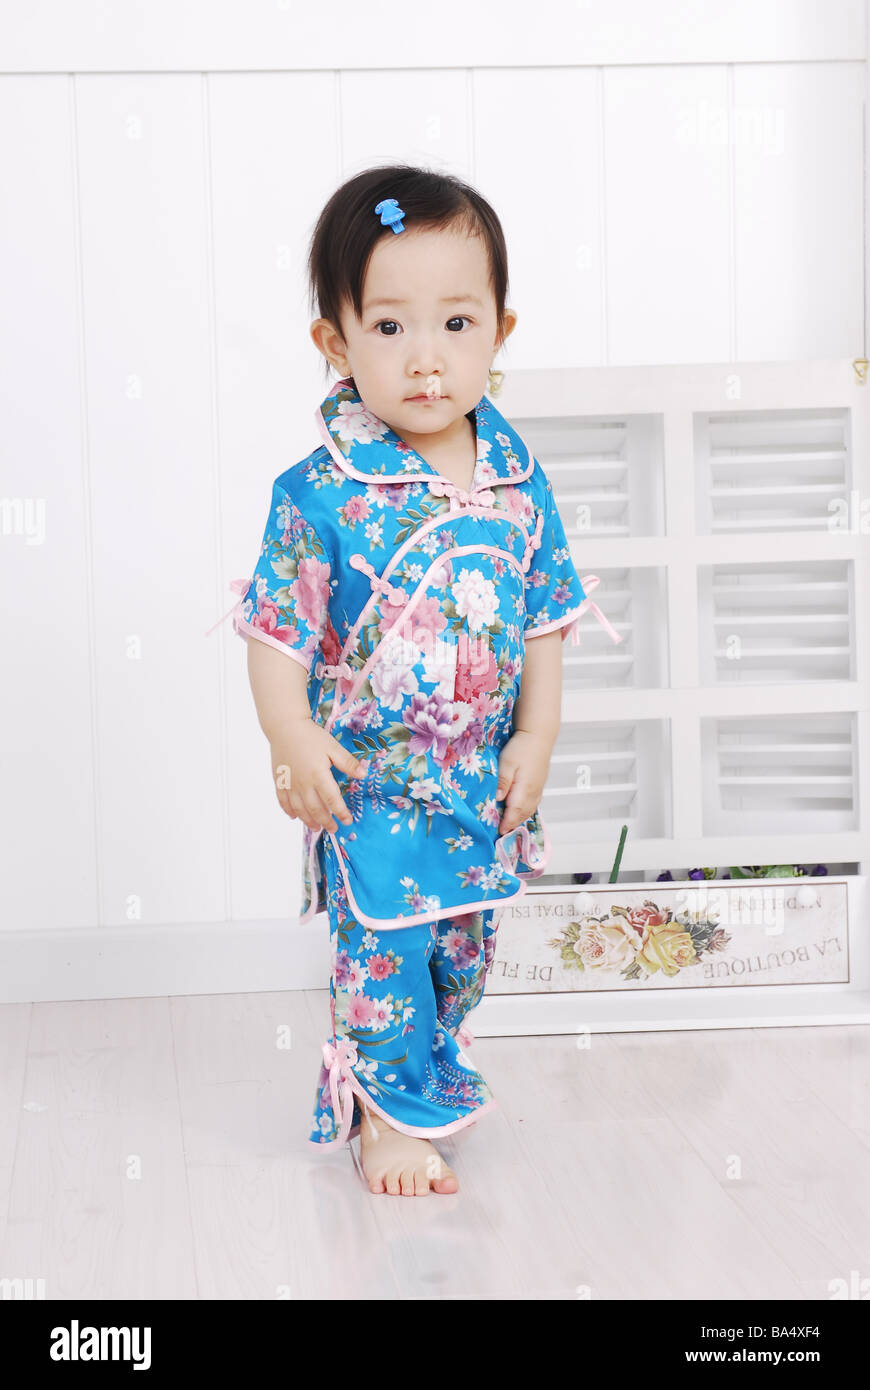 6d2dcf1d4867 Cute Chinese baby girl in traditional dress Stock Photo  23465544 ...